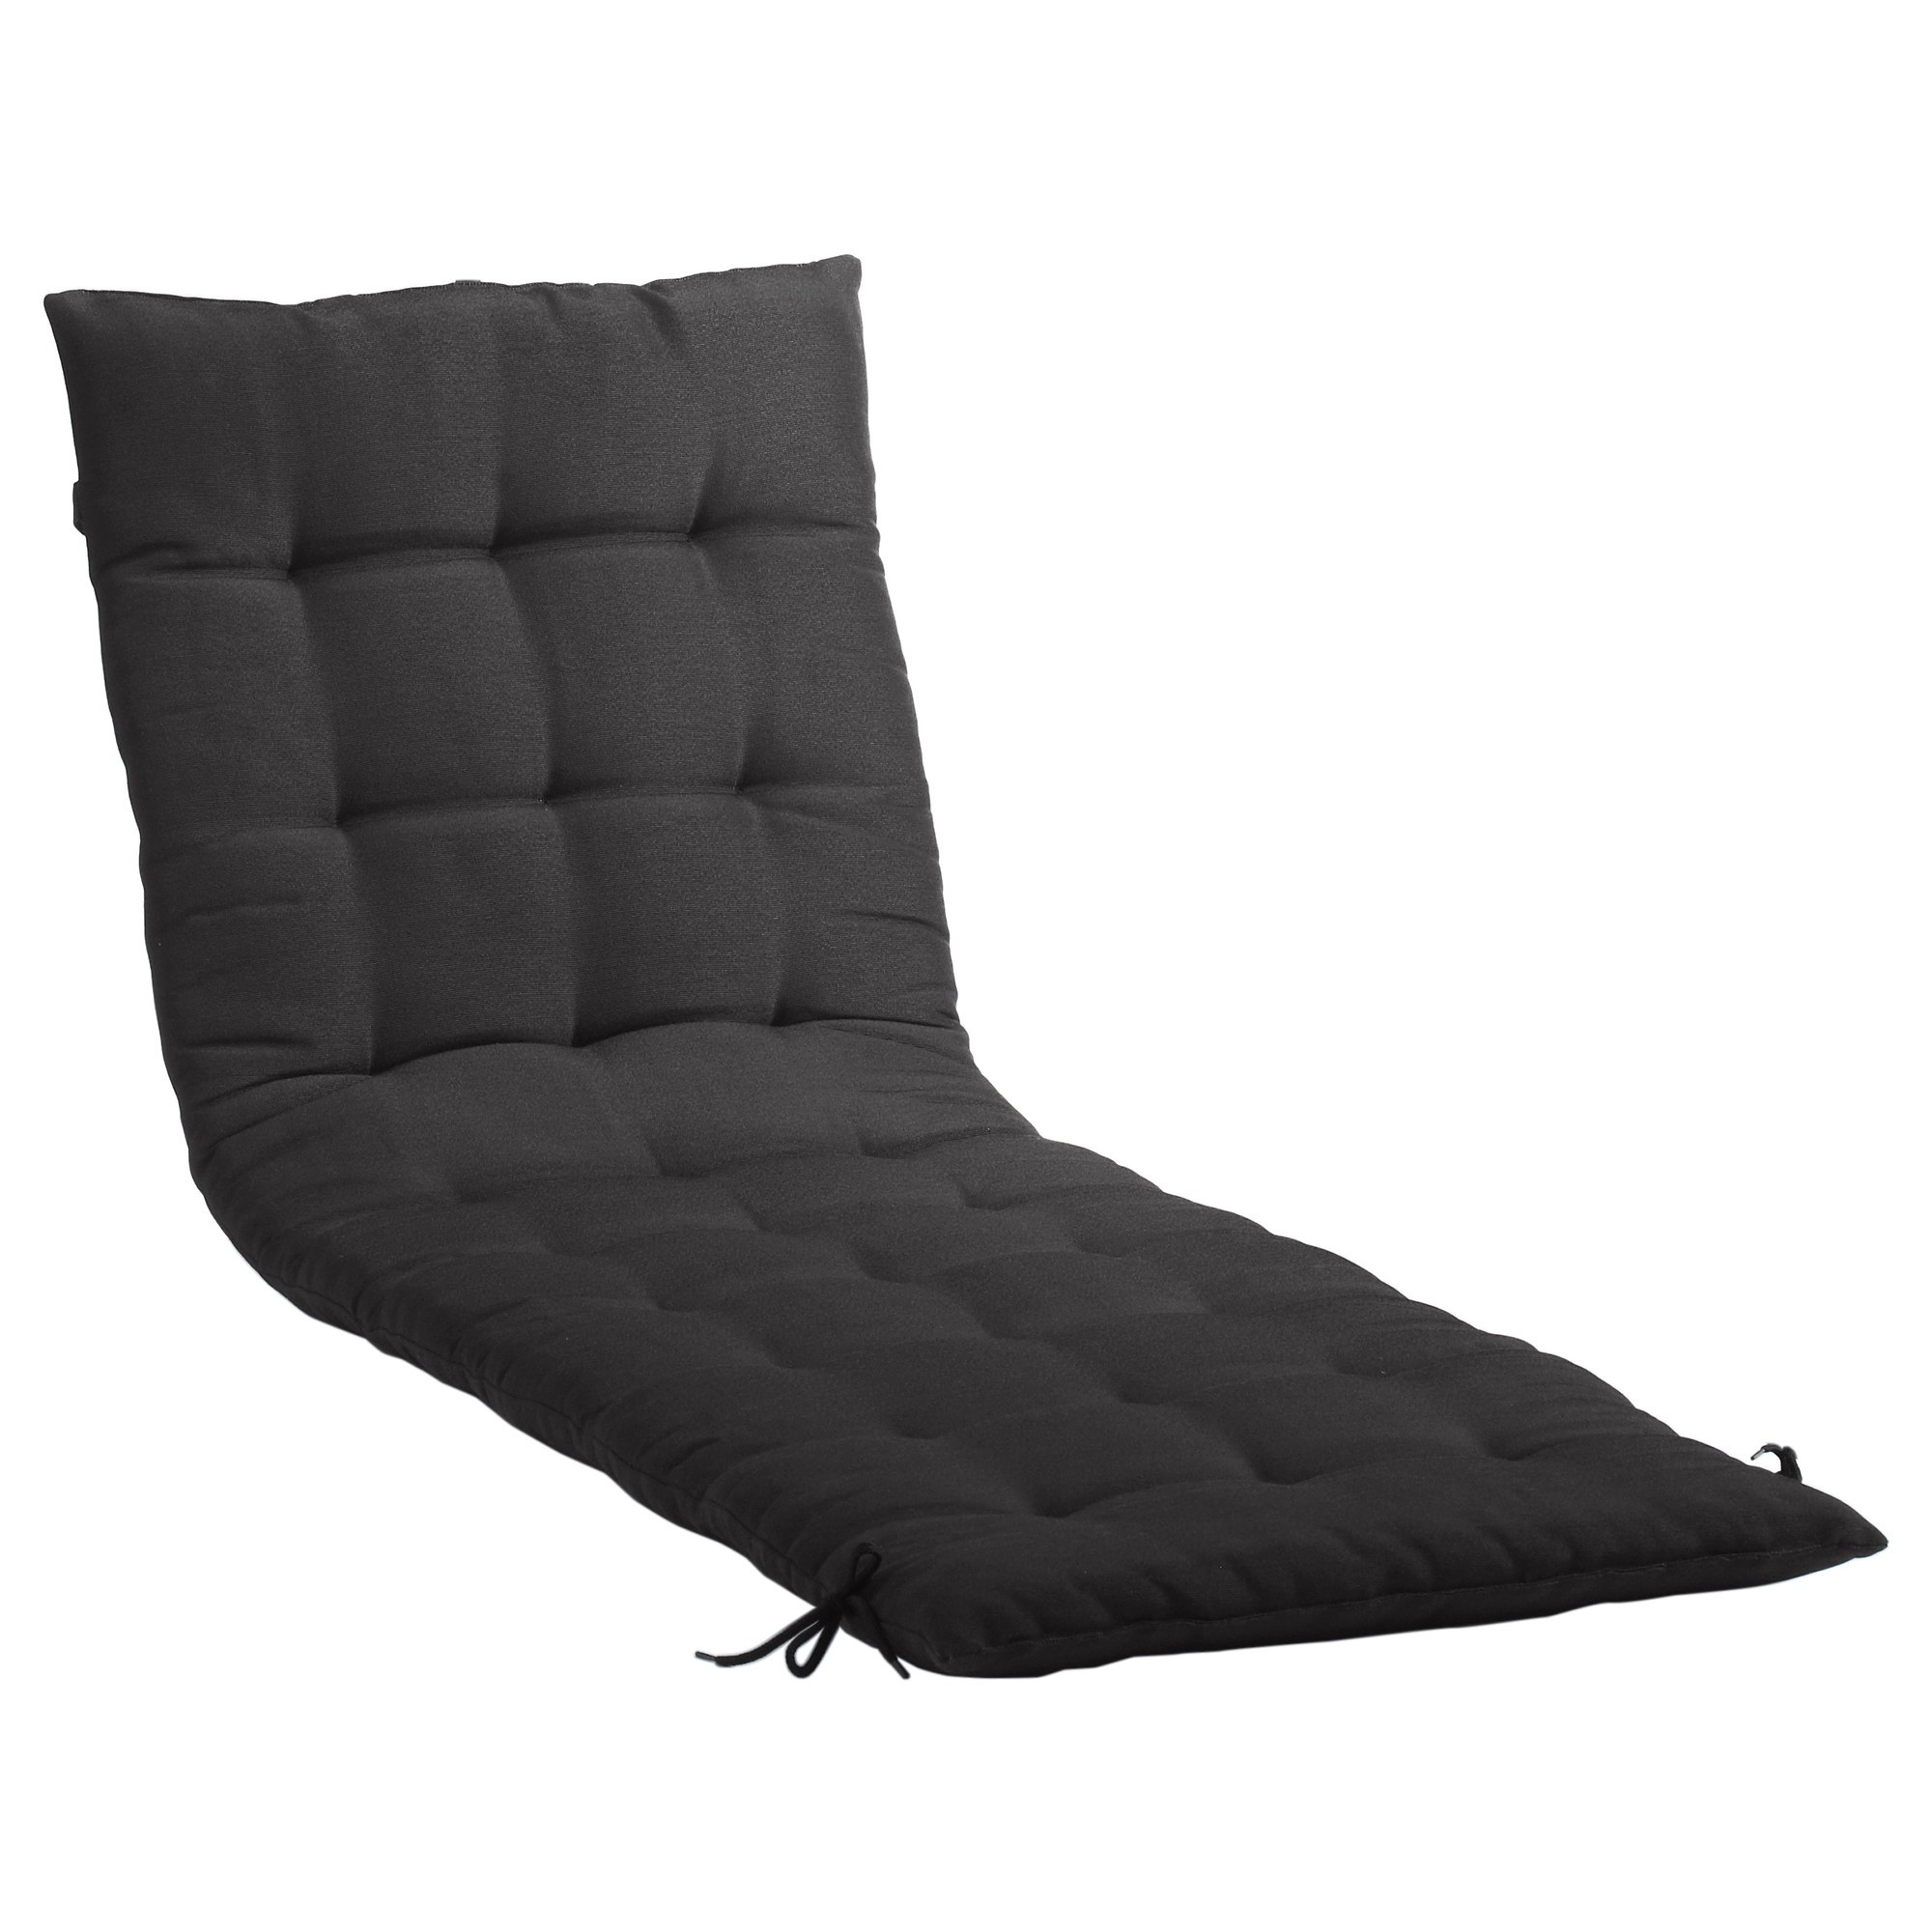 ikea coussin de chaise finest galette with ikea coussin de chaise great incroyable coussin de. Black Bedroom Furniture Sets. Home Design Ideas